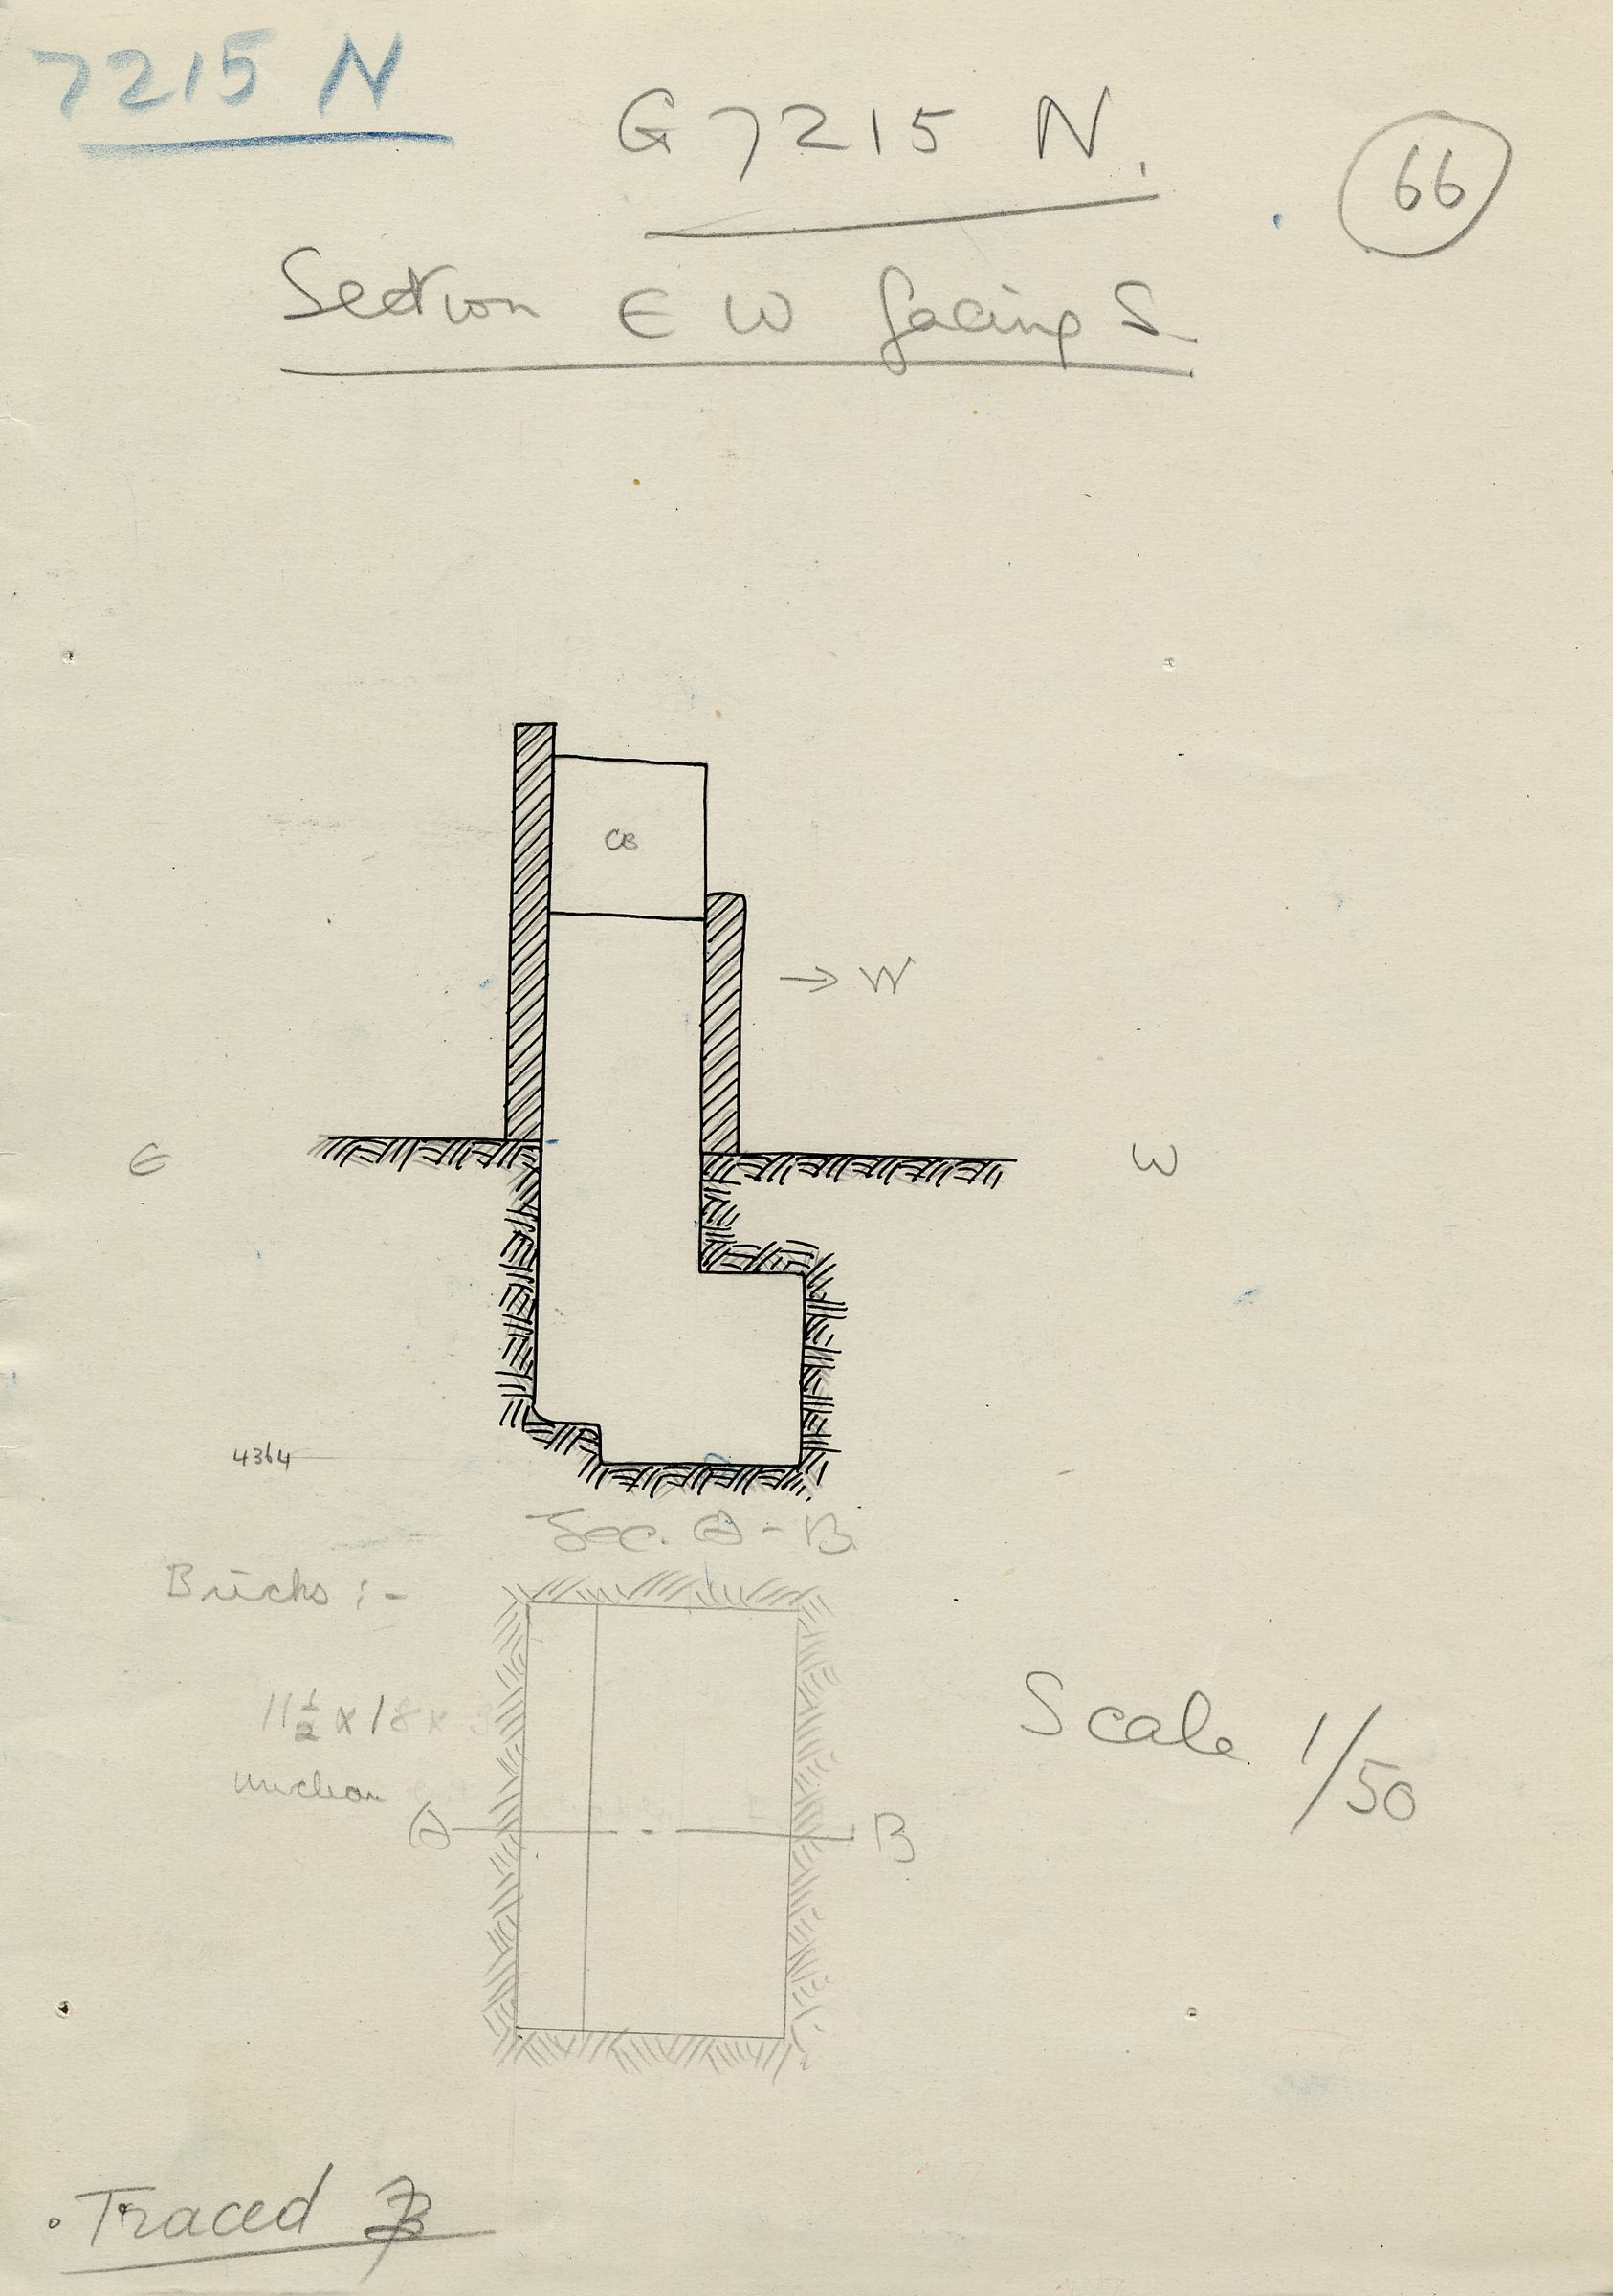 Maps and plans: G 7215, Shaft N